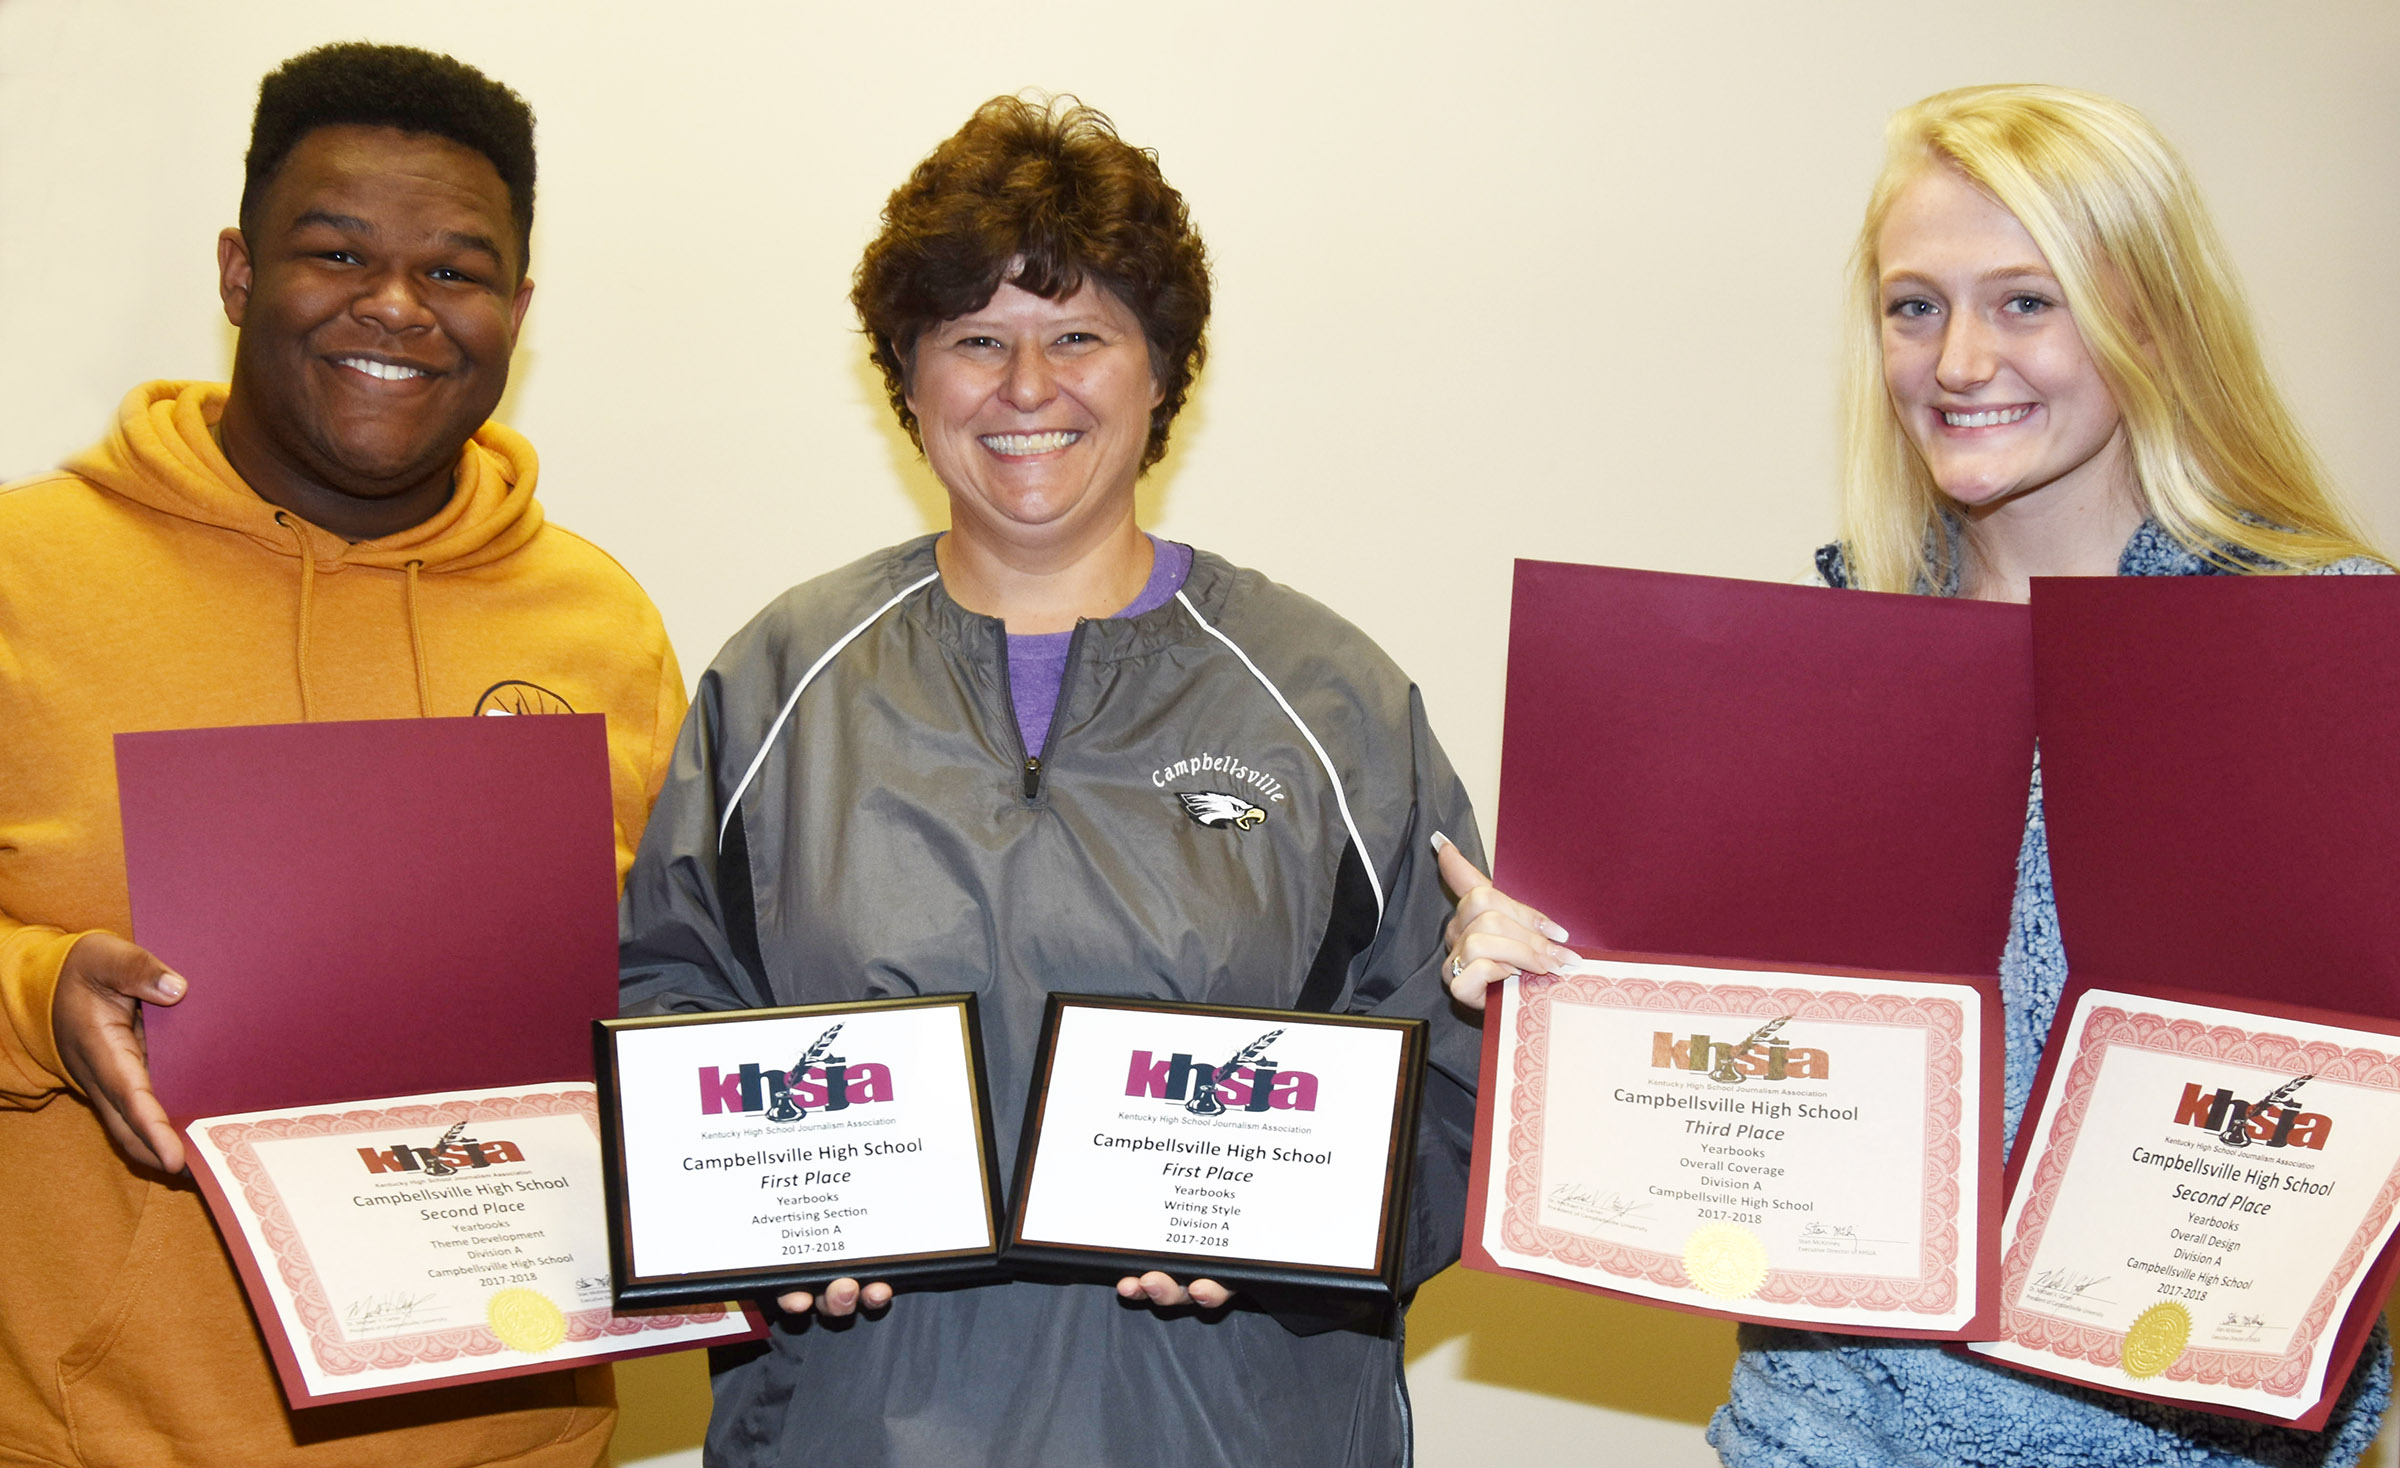 Campbellsville High School journalism students attended the Kentucky High School Journalism Association Workshop on Thursday, Oct. 11, and brought home five awards. With CHS media specialist and yearbook advisor Valerie Davis are senior yearbook staff members Jeremiah Jackson and Abbie Dicken.